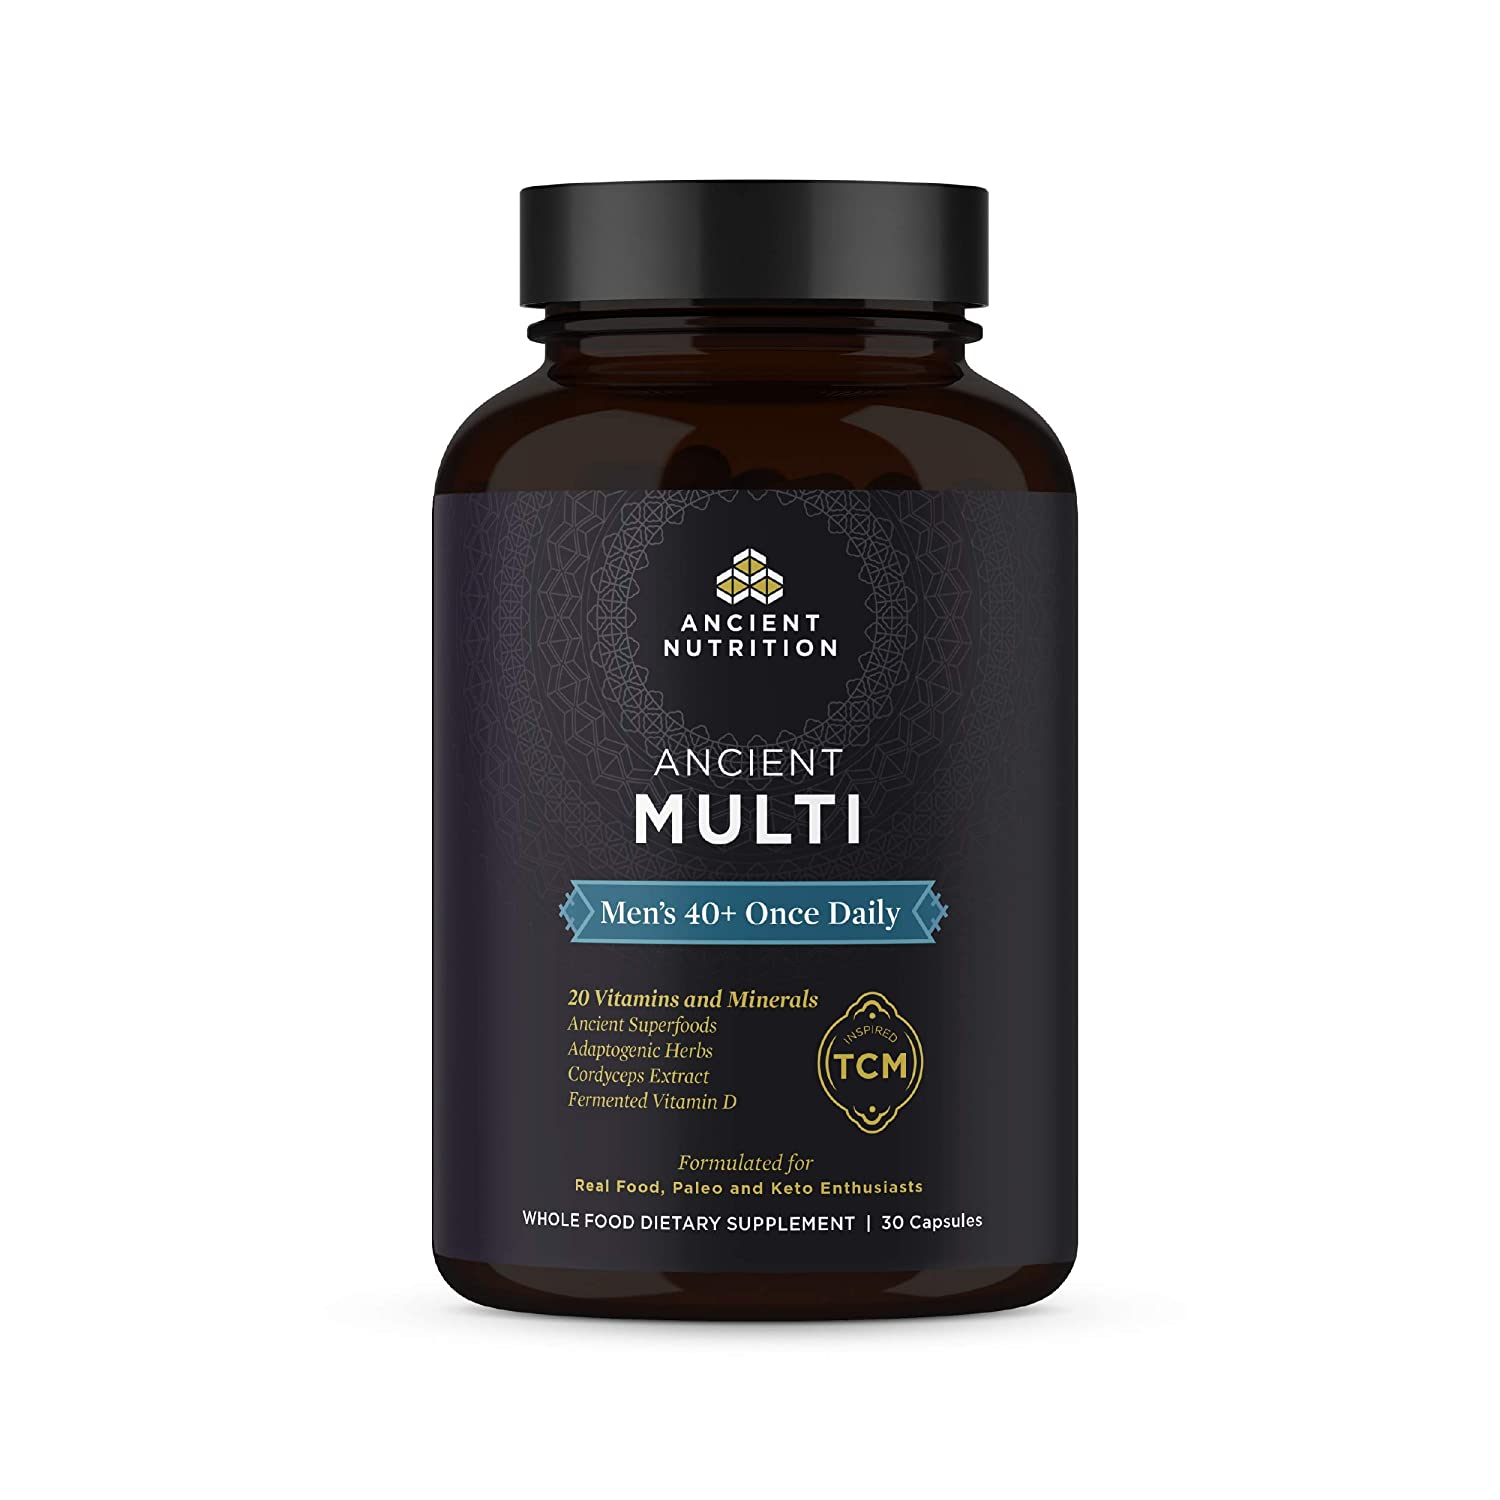 Ancient Nutrition, Ancient Multi Men s 40 Once Daily – 20 Vitamins Minerals, Adaptogenic Herbs, Cordyceps Extract, Paleo Keto Friendly, 30 Capsules